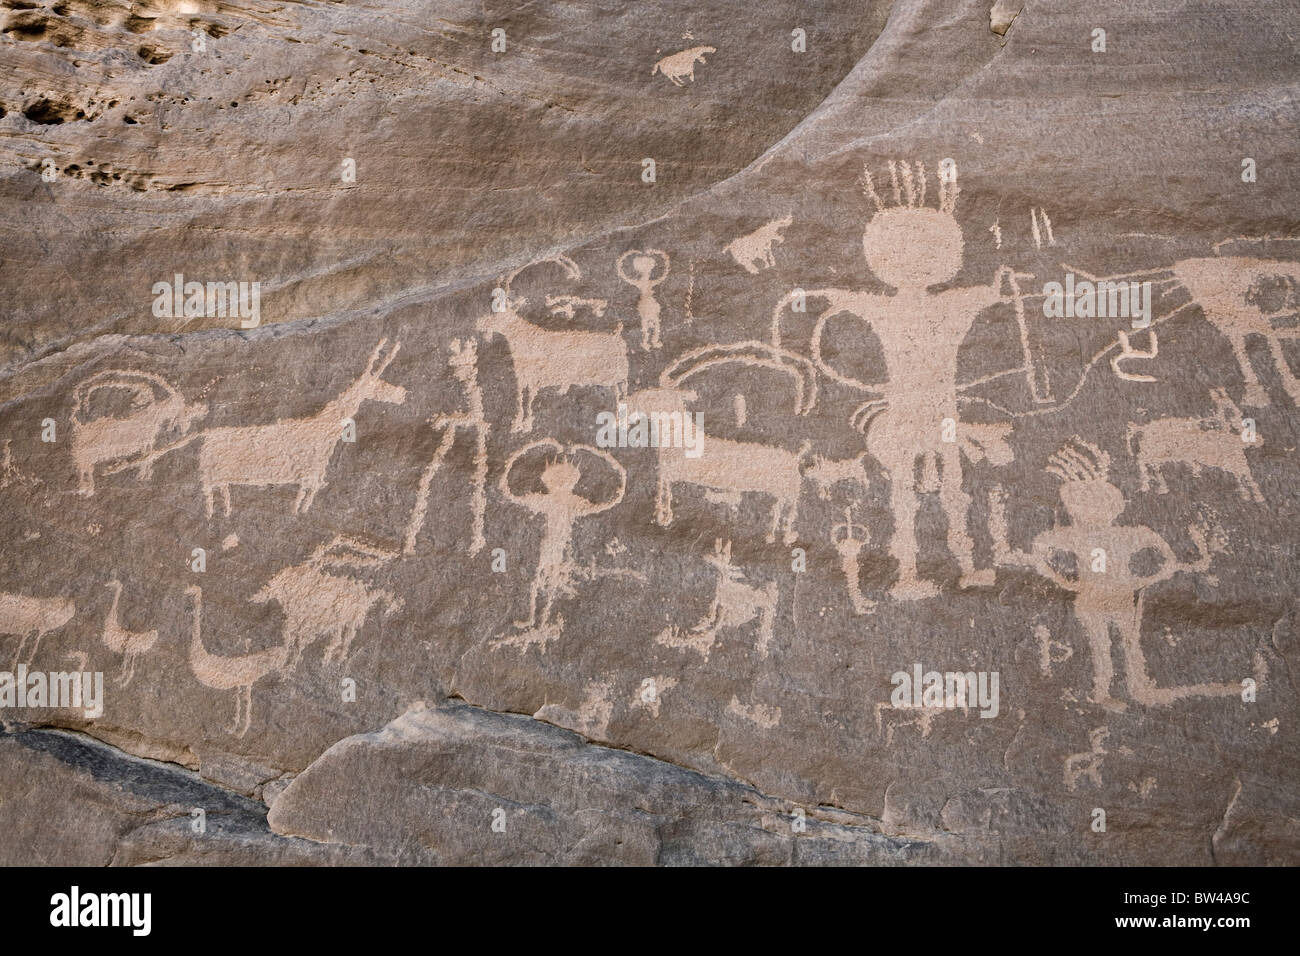 Petroglyphs of men and animals on rock-face in Wadi Umm Salam in Eastern Desert of Egypt - Stock Image